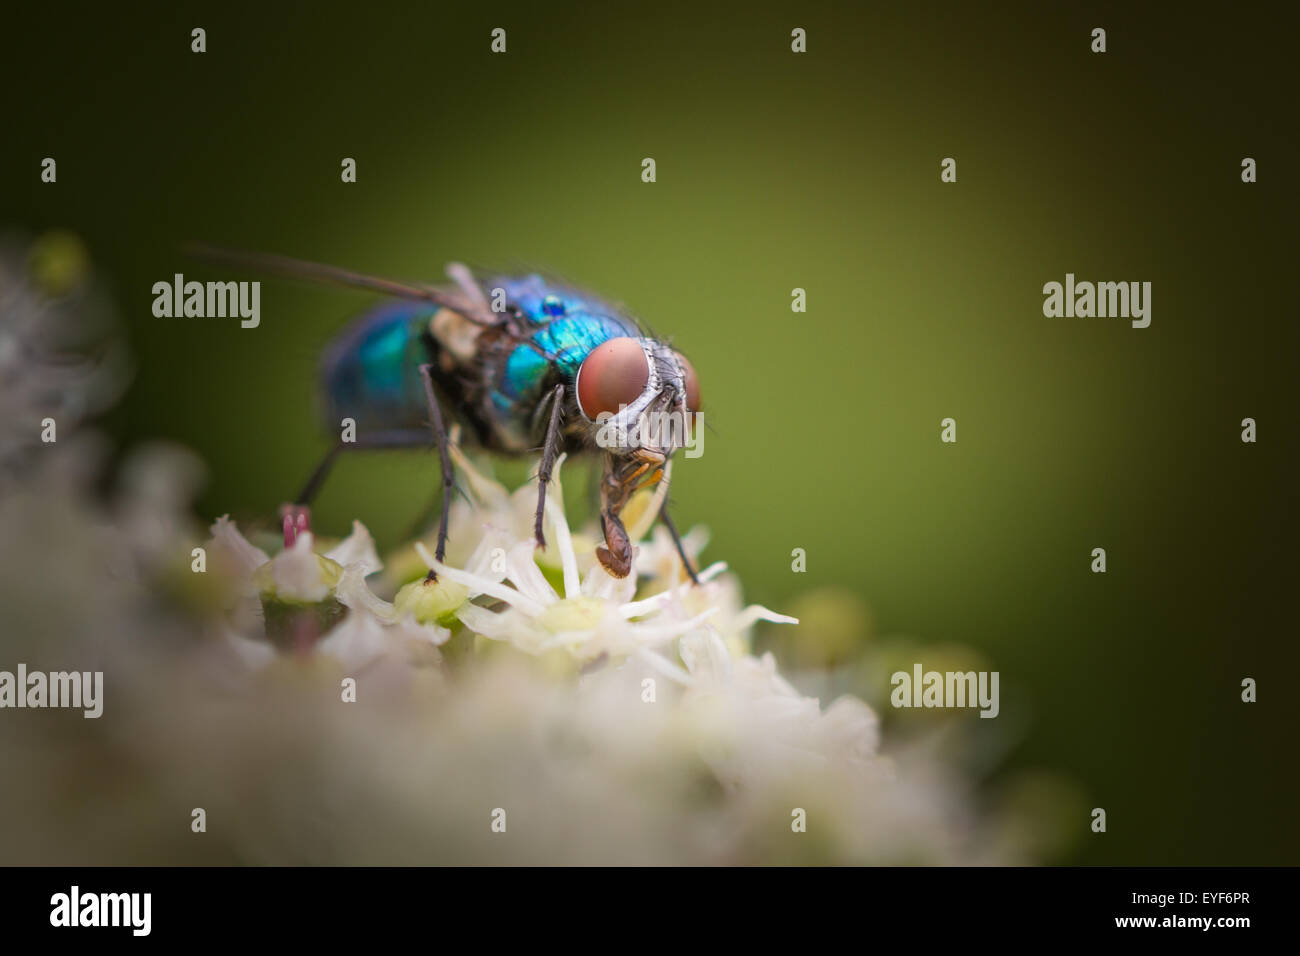 Greenbottle fly showing off its iridescent colours and proboscis - Stock Image